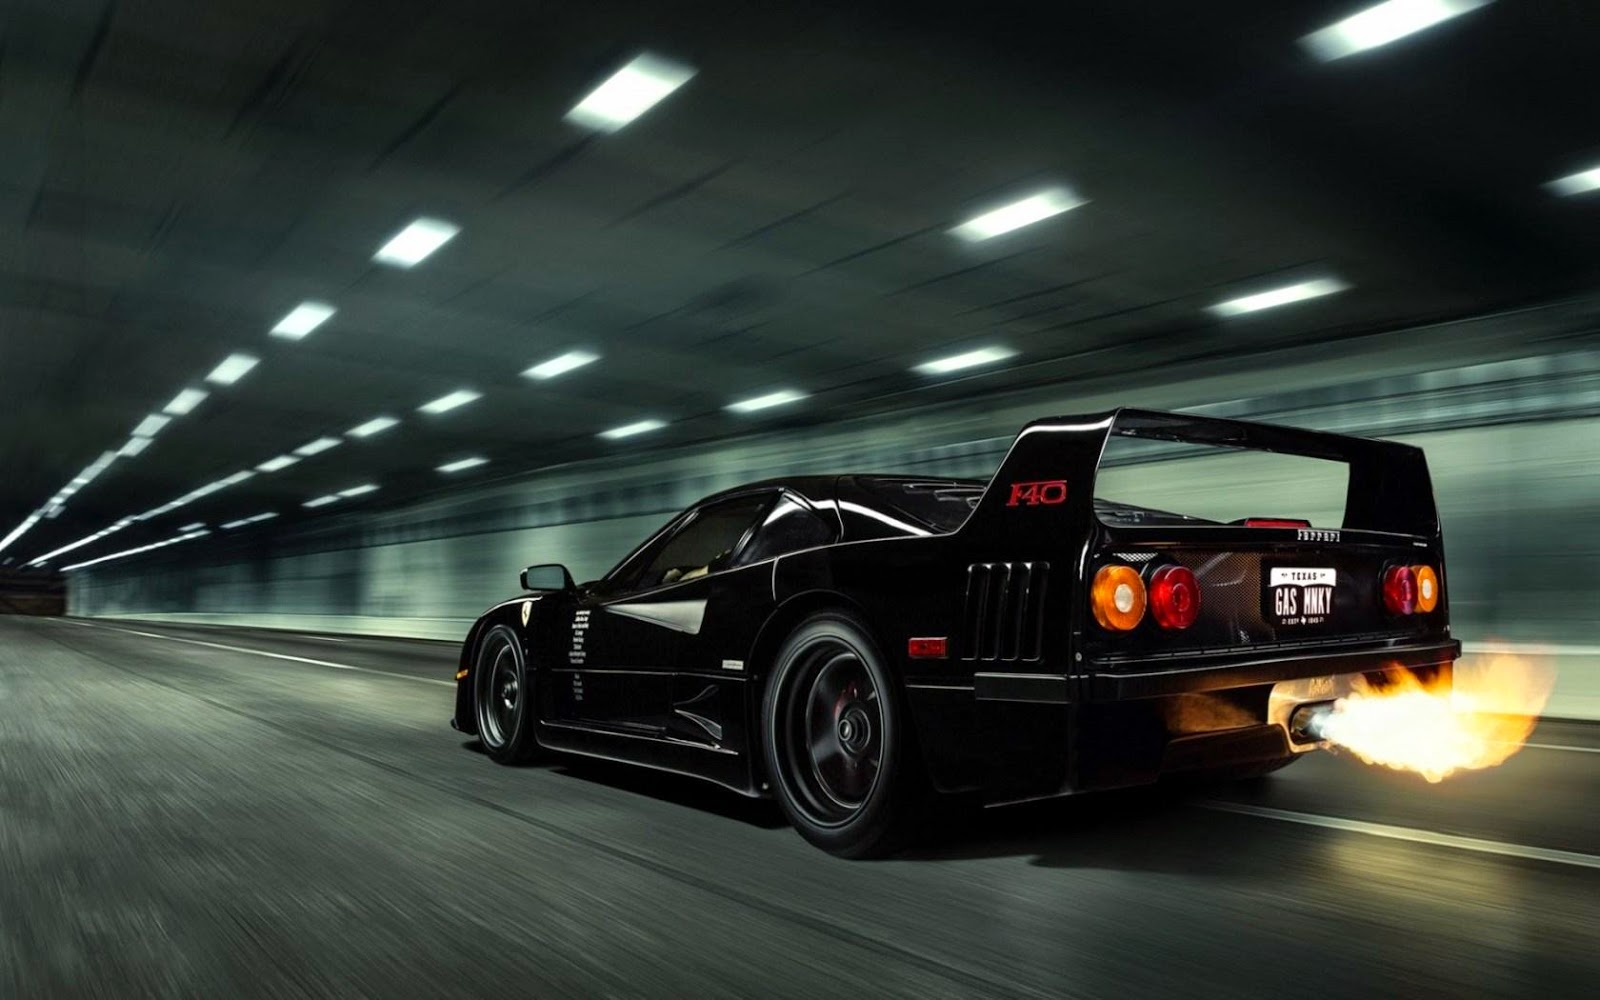 ferrari f40 hd wallpapers   hd wallpapers storm free download high